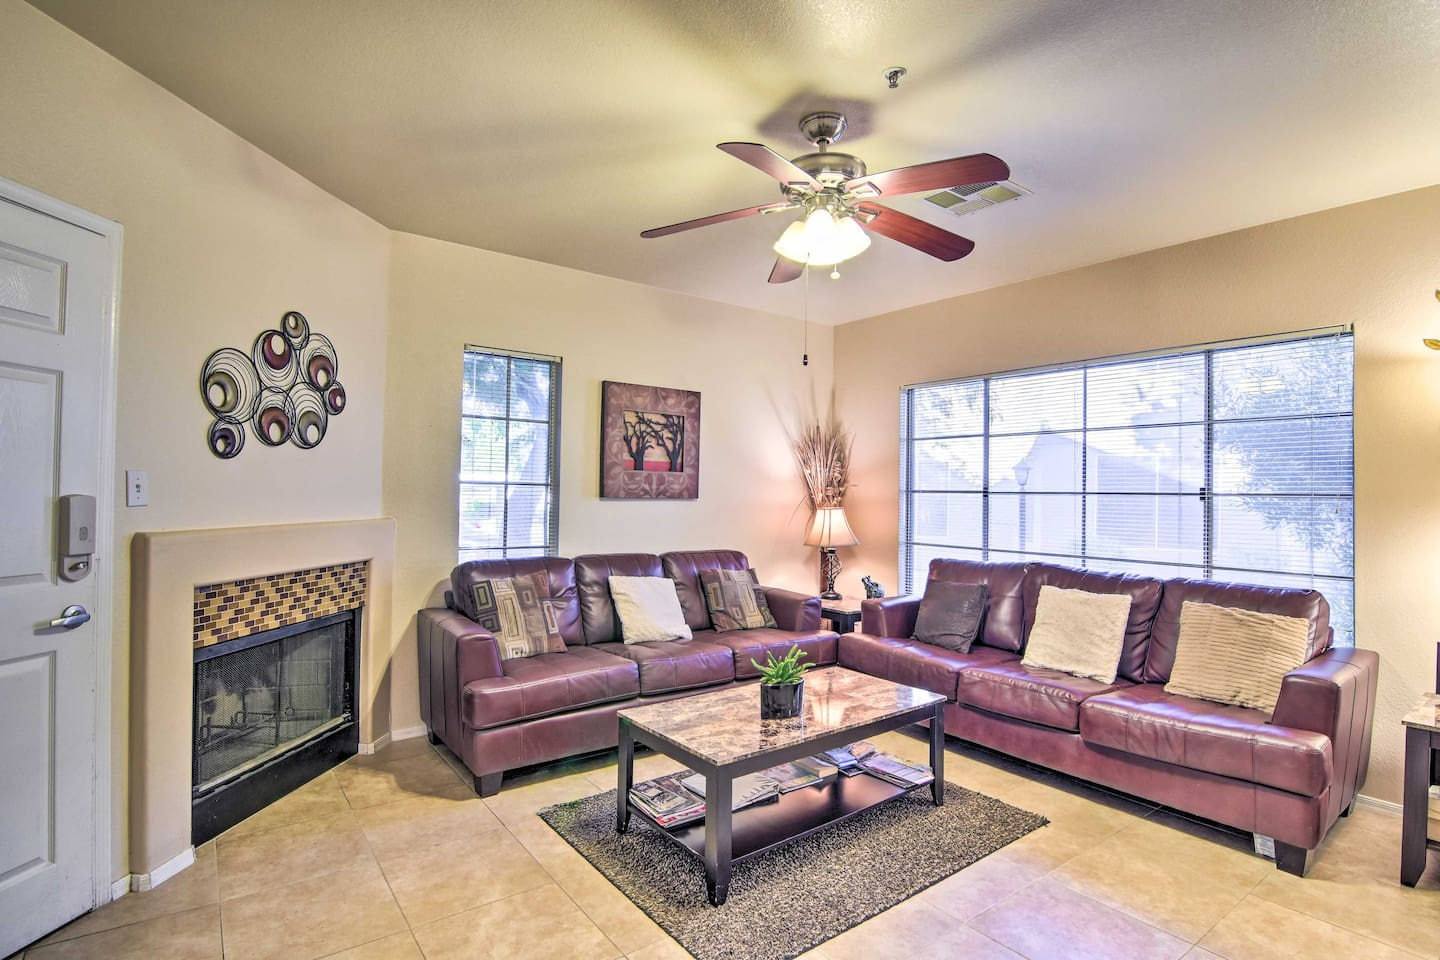 The home features 2 bedrooms, 2 bathrooms, a sleeper sofa, and room for 6.